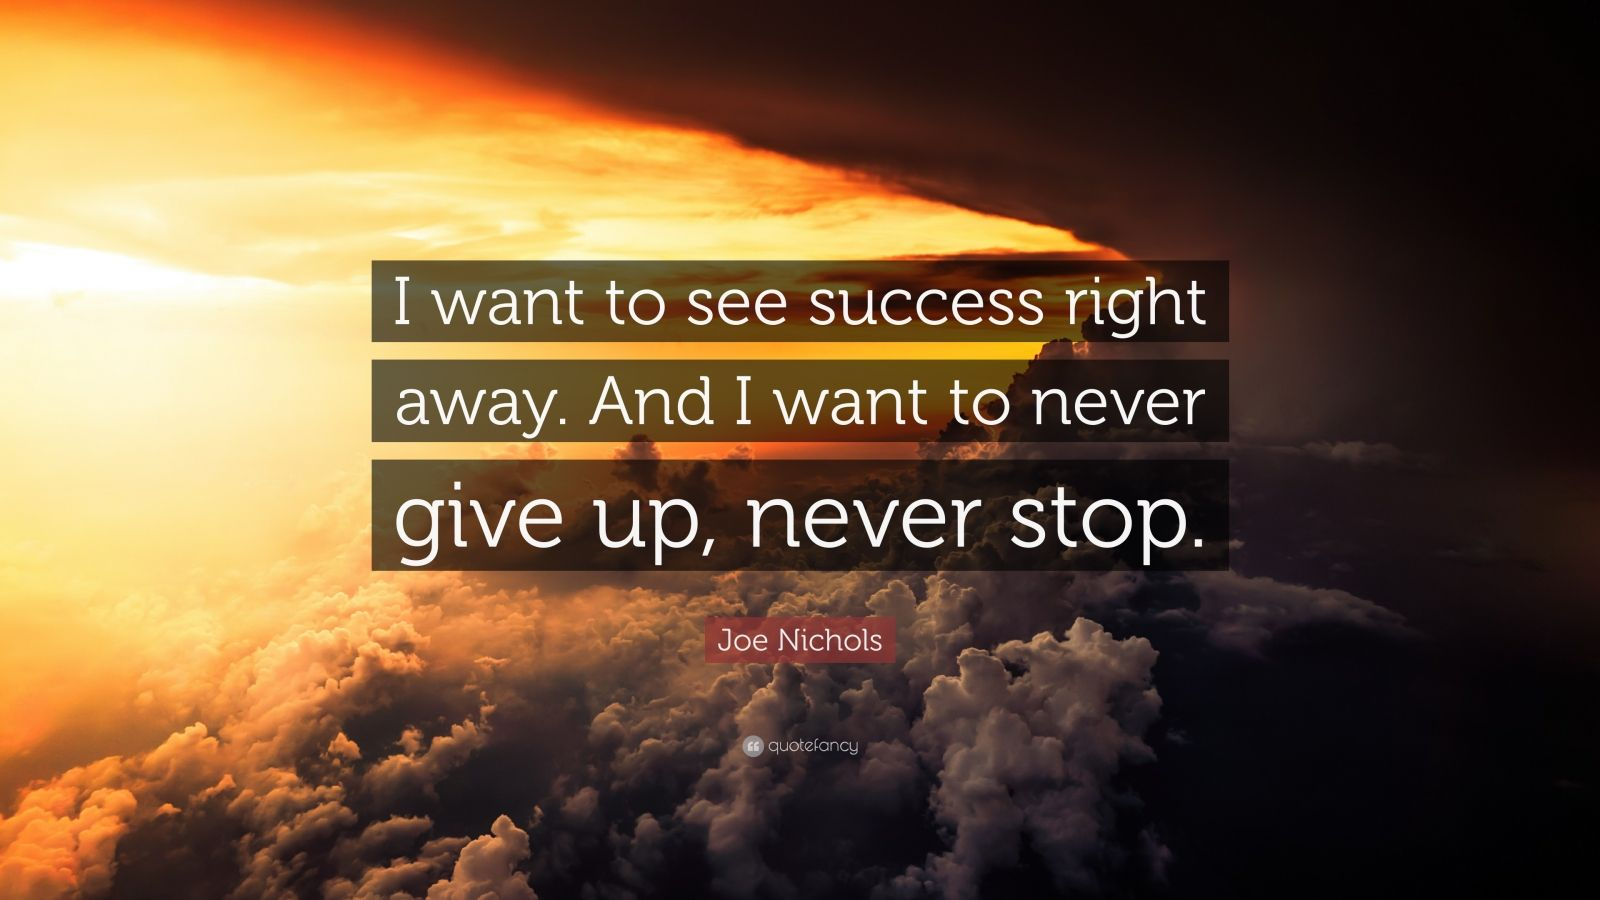 """Joe Nichols Quote: """"I want to see success right away. And I want to never give up, never stop."""""""